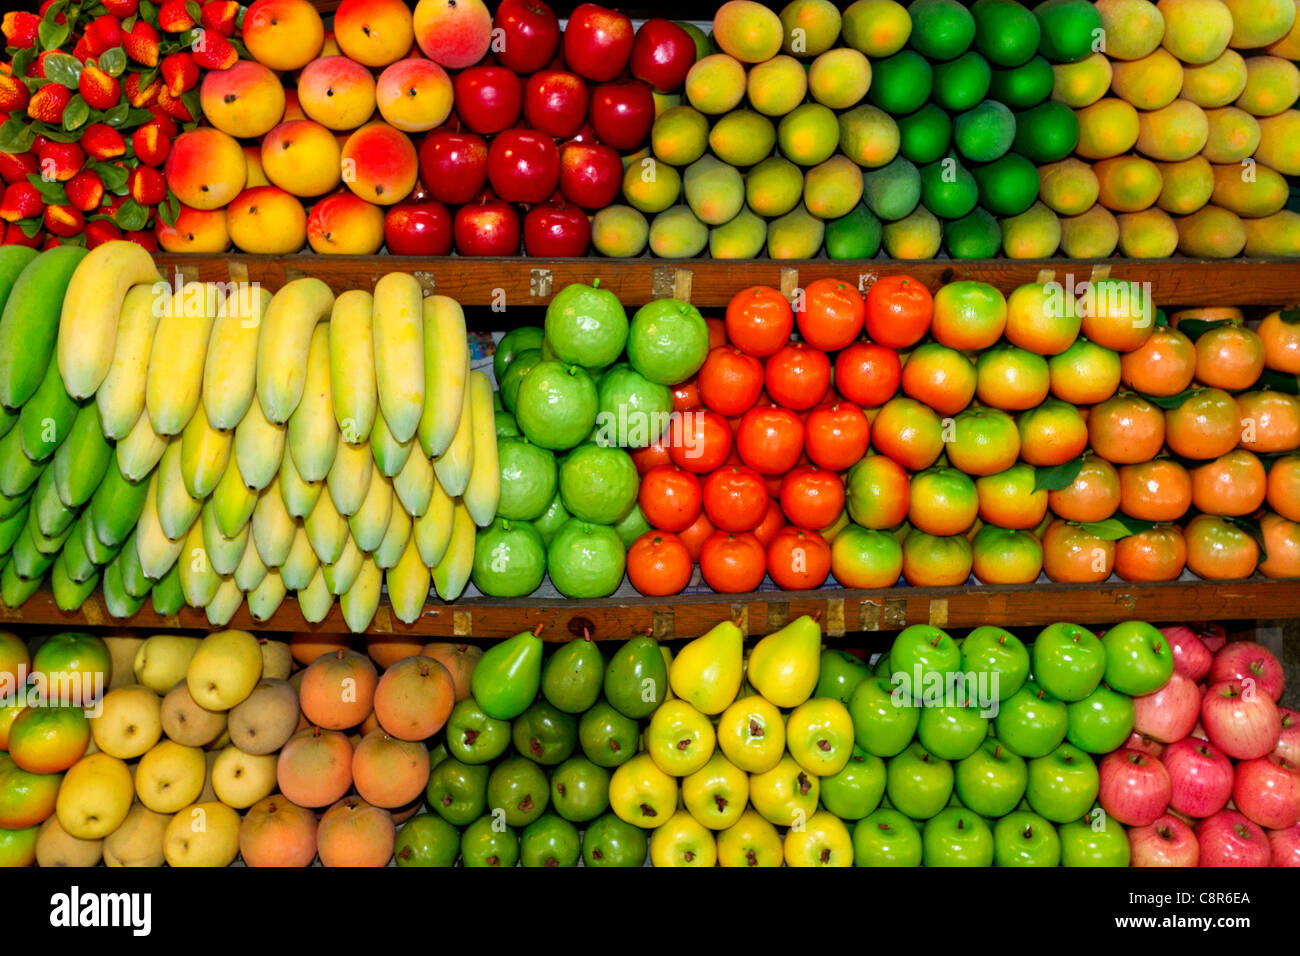 Fruits at Chatuchak market stall in Bangkok, Thailand - Stock Image